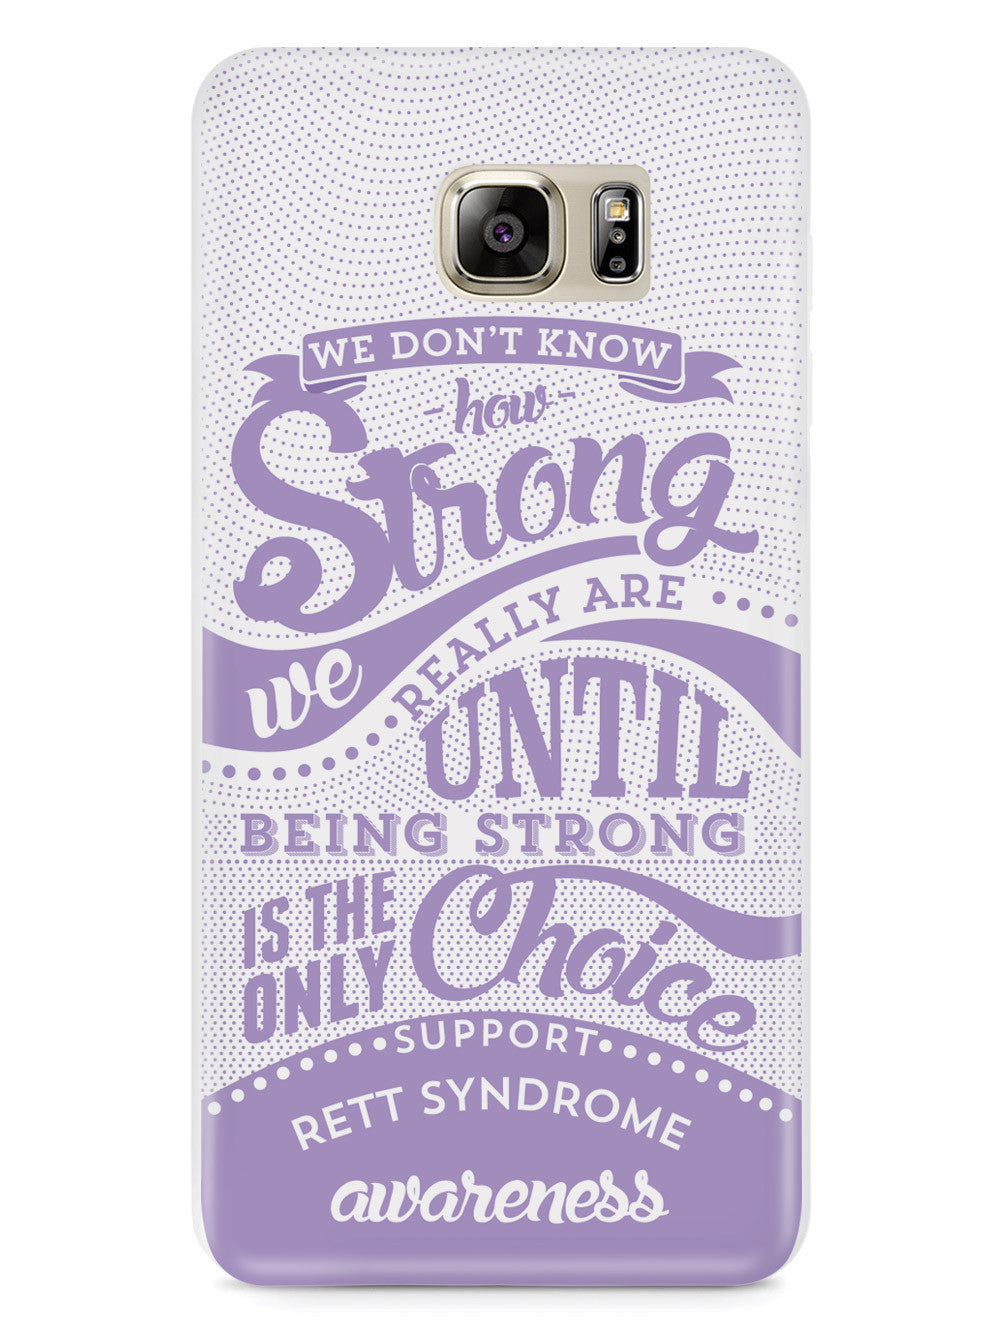 How Strong - Rett Syndrome Case